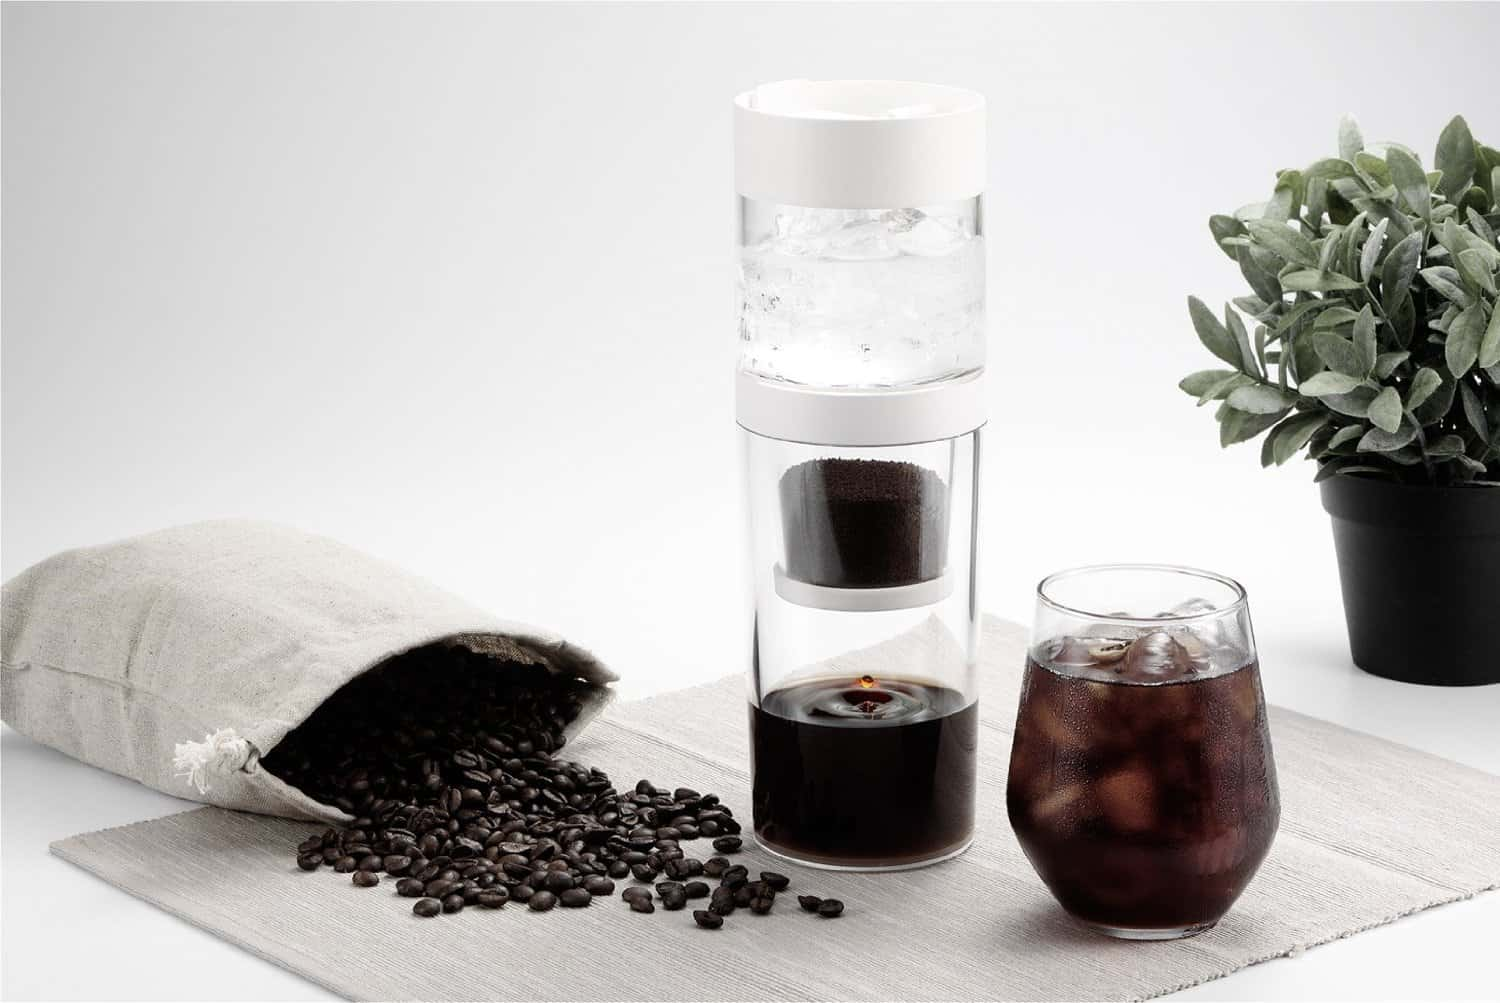 Cold brew coffee at home with Dripo